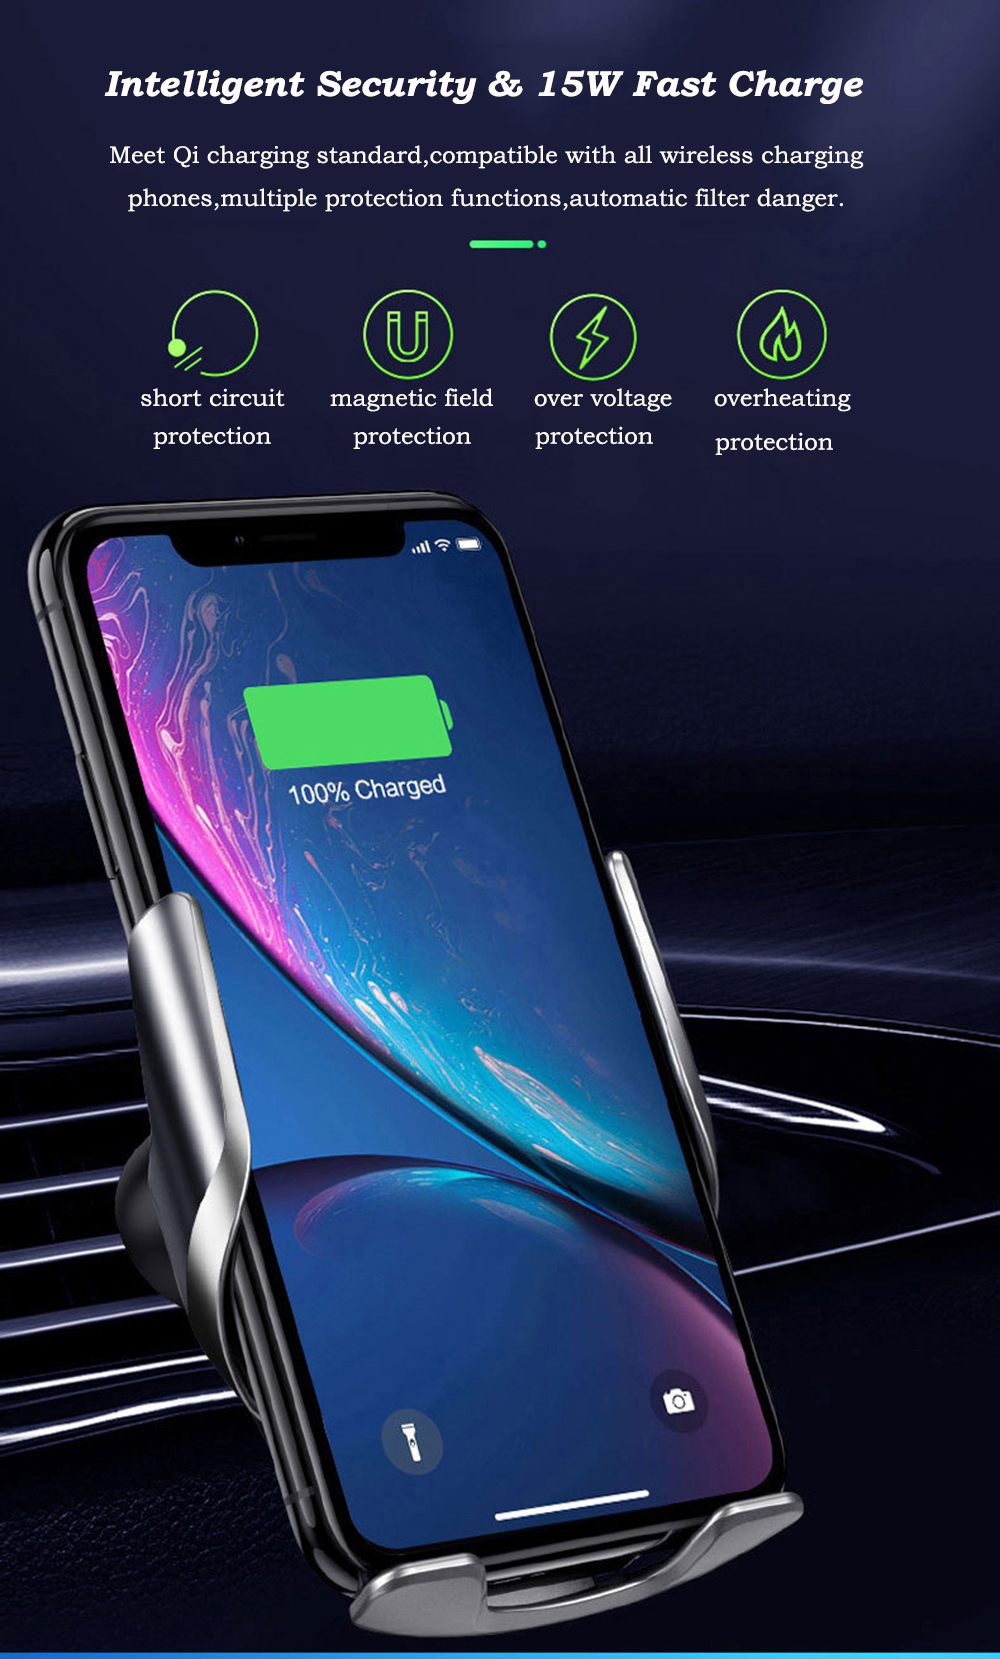 Bakeey 15W Infrared Induction Fast Charging Qi Wireless Charger Bracket For iPhone 8Plus XS 11 Pro Huawei P30 Pro Mate 30 5G Xiaomi Mi9 9Pro 5G